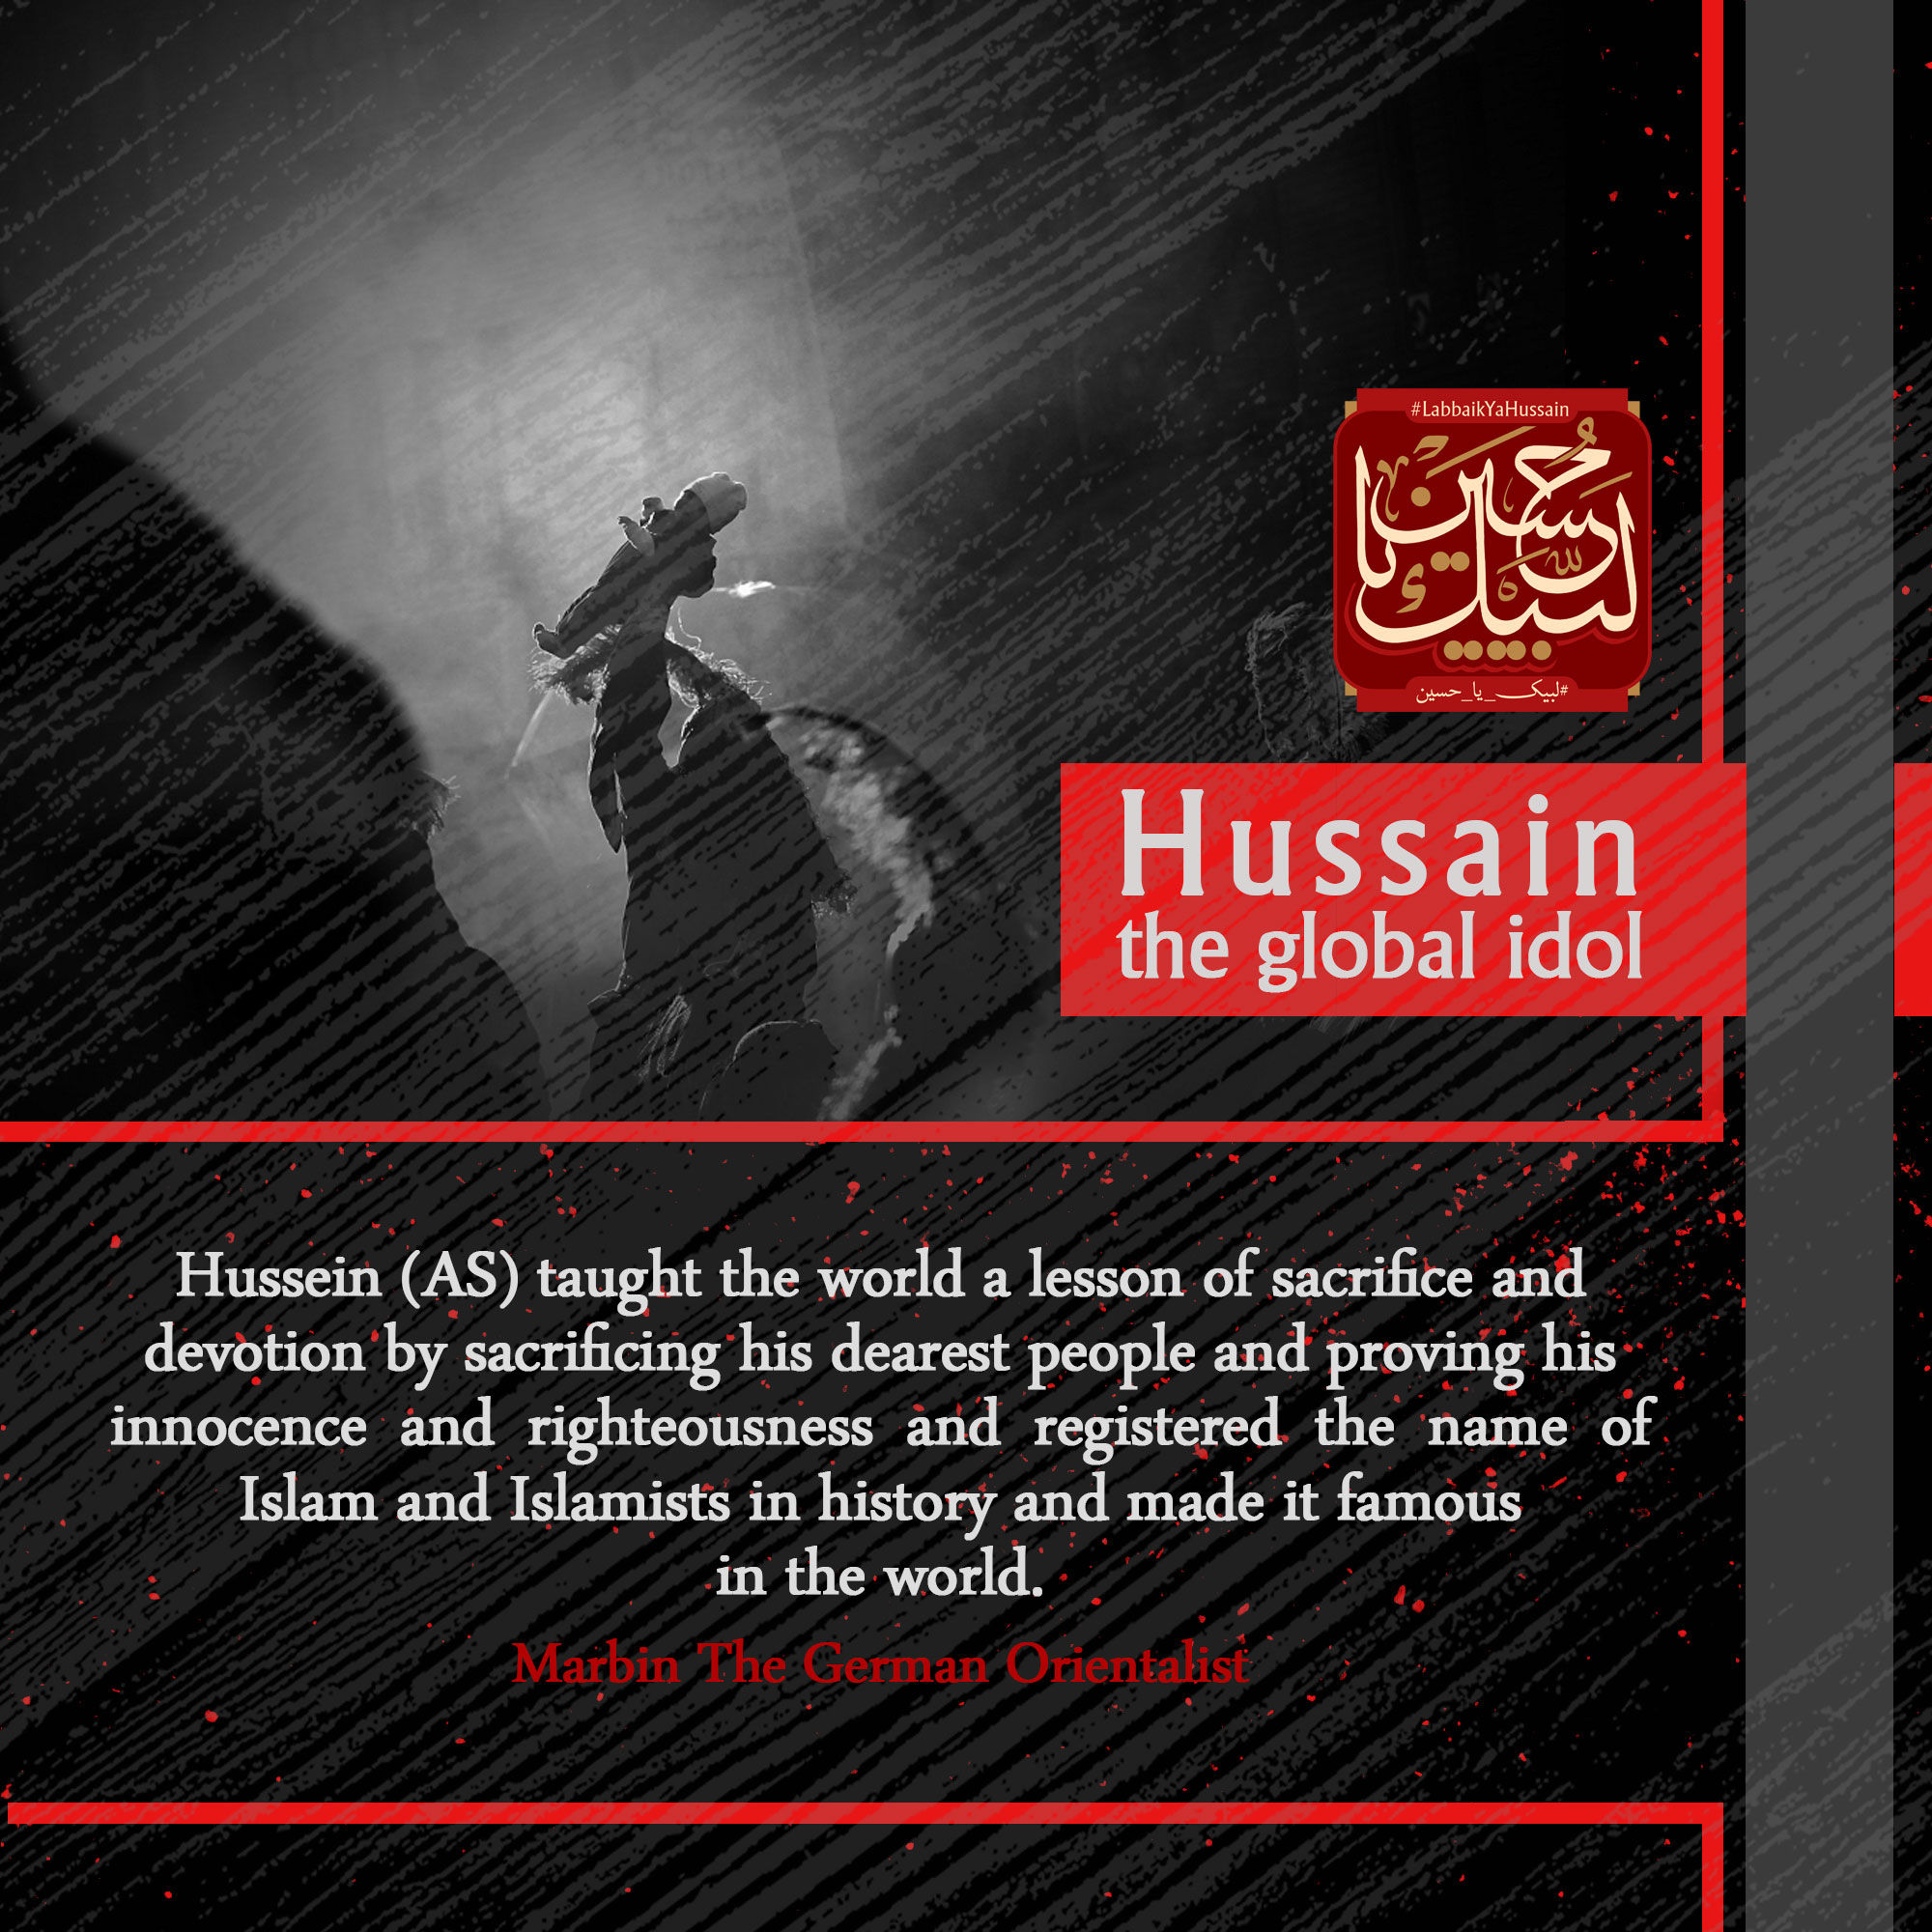 A German orientalist says: Hussain taught the world a lesson of sacrifice and devotion